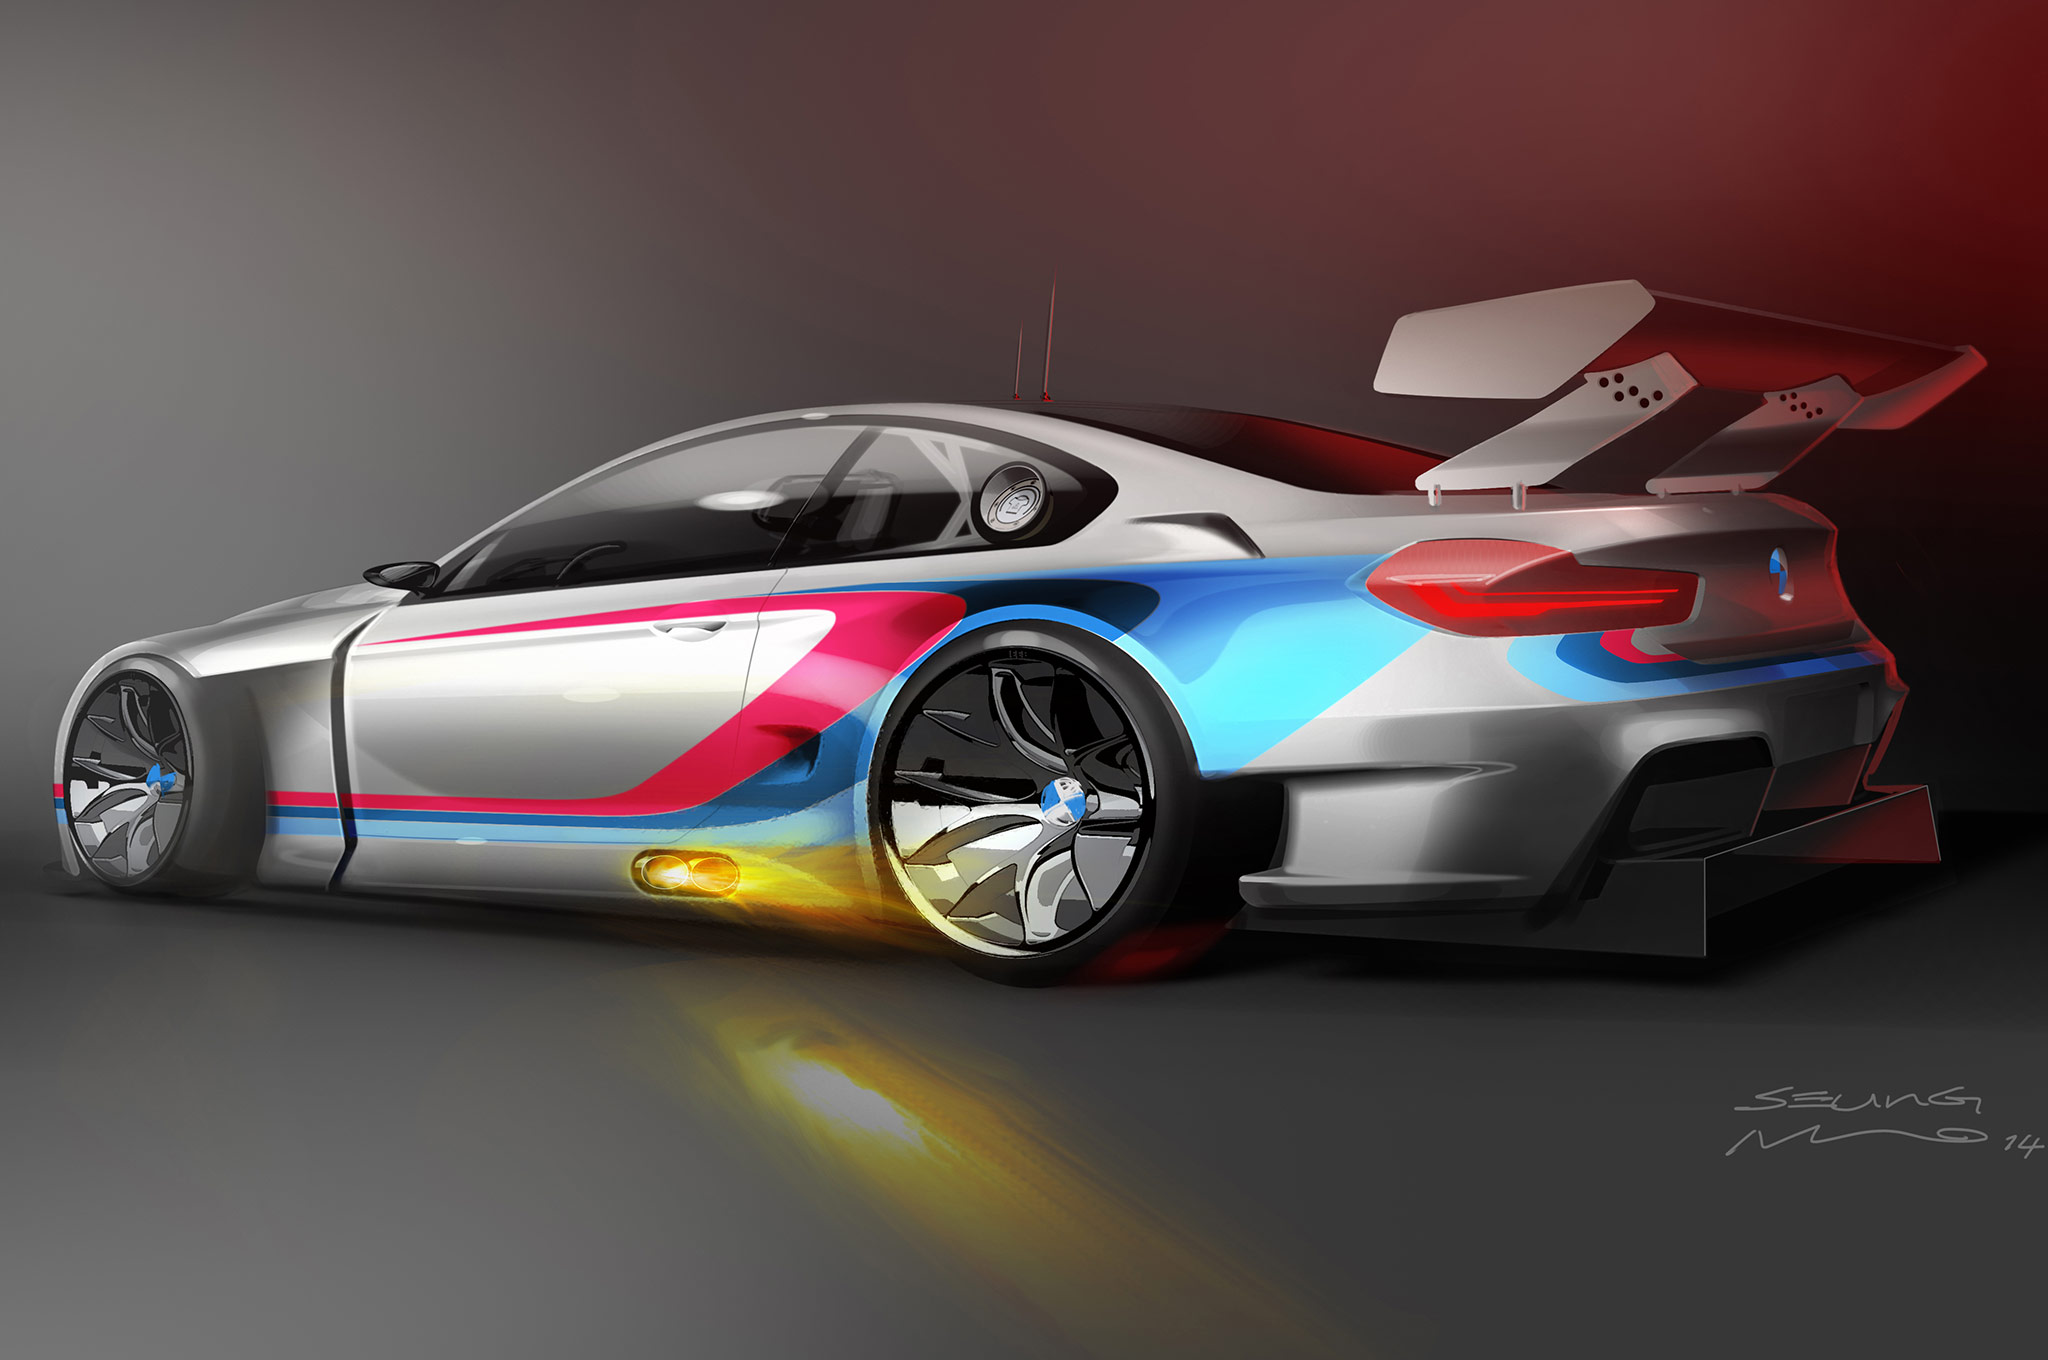 Bmw Previews M6 Gt3 Racing Car